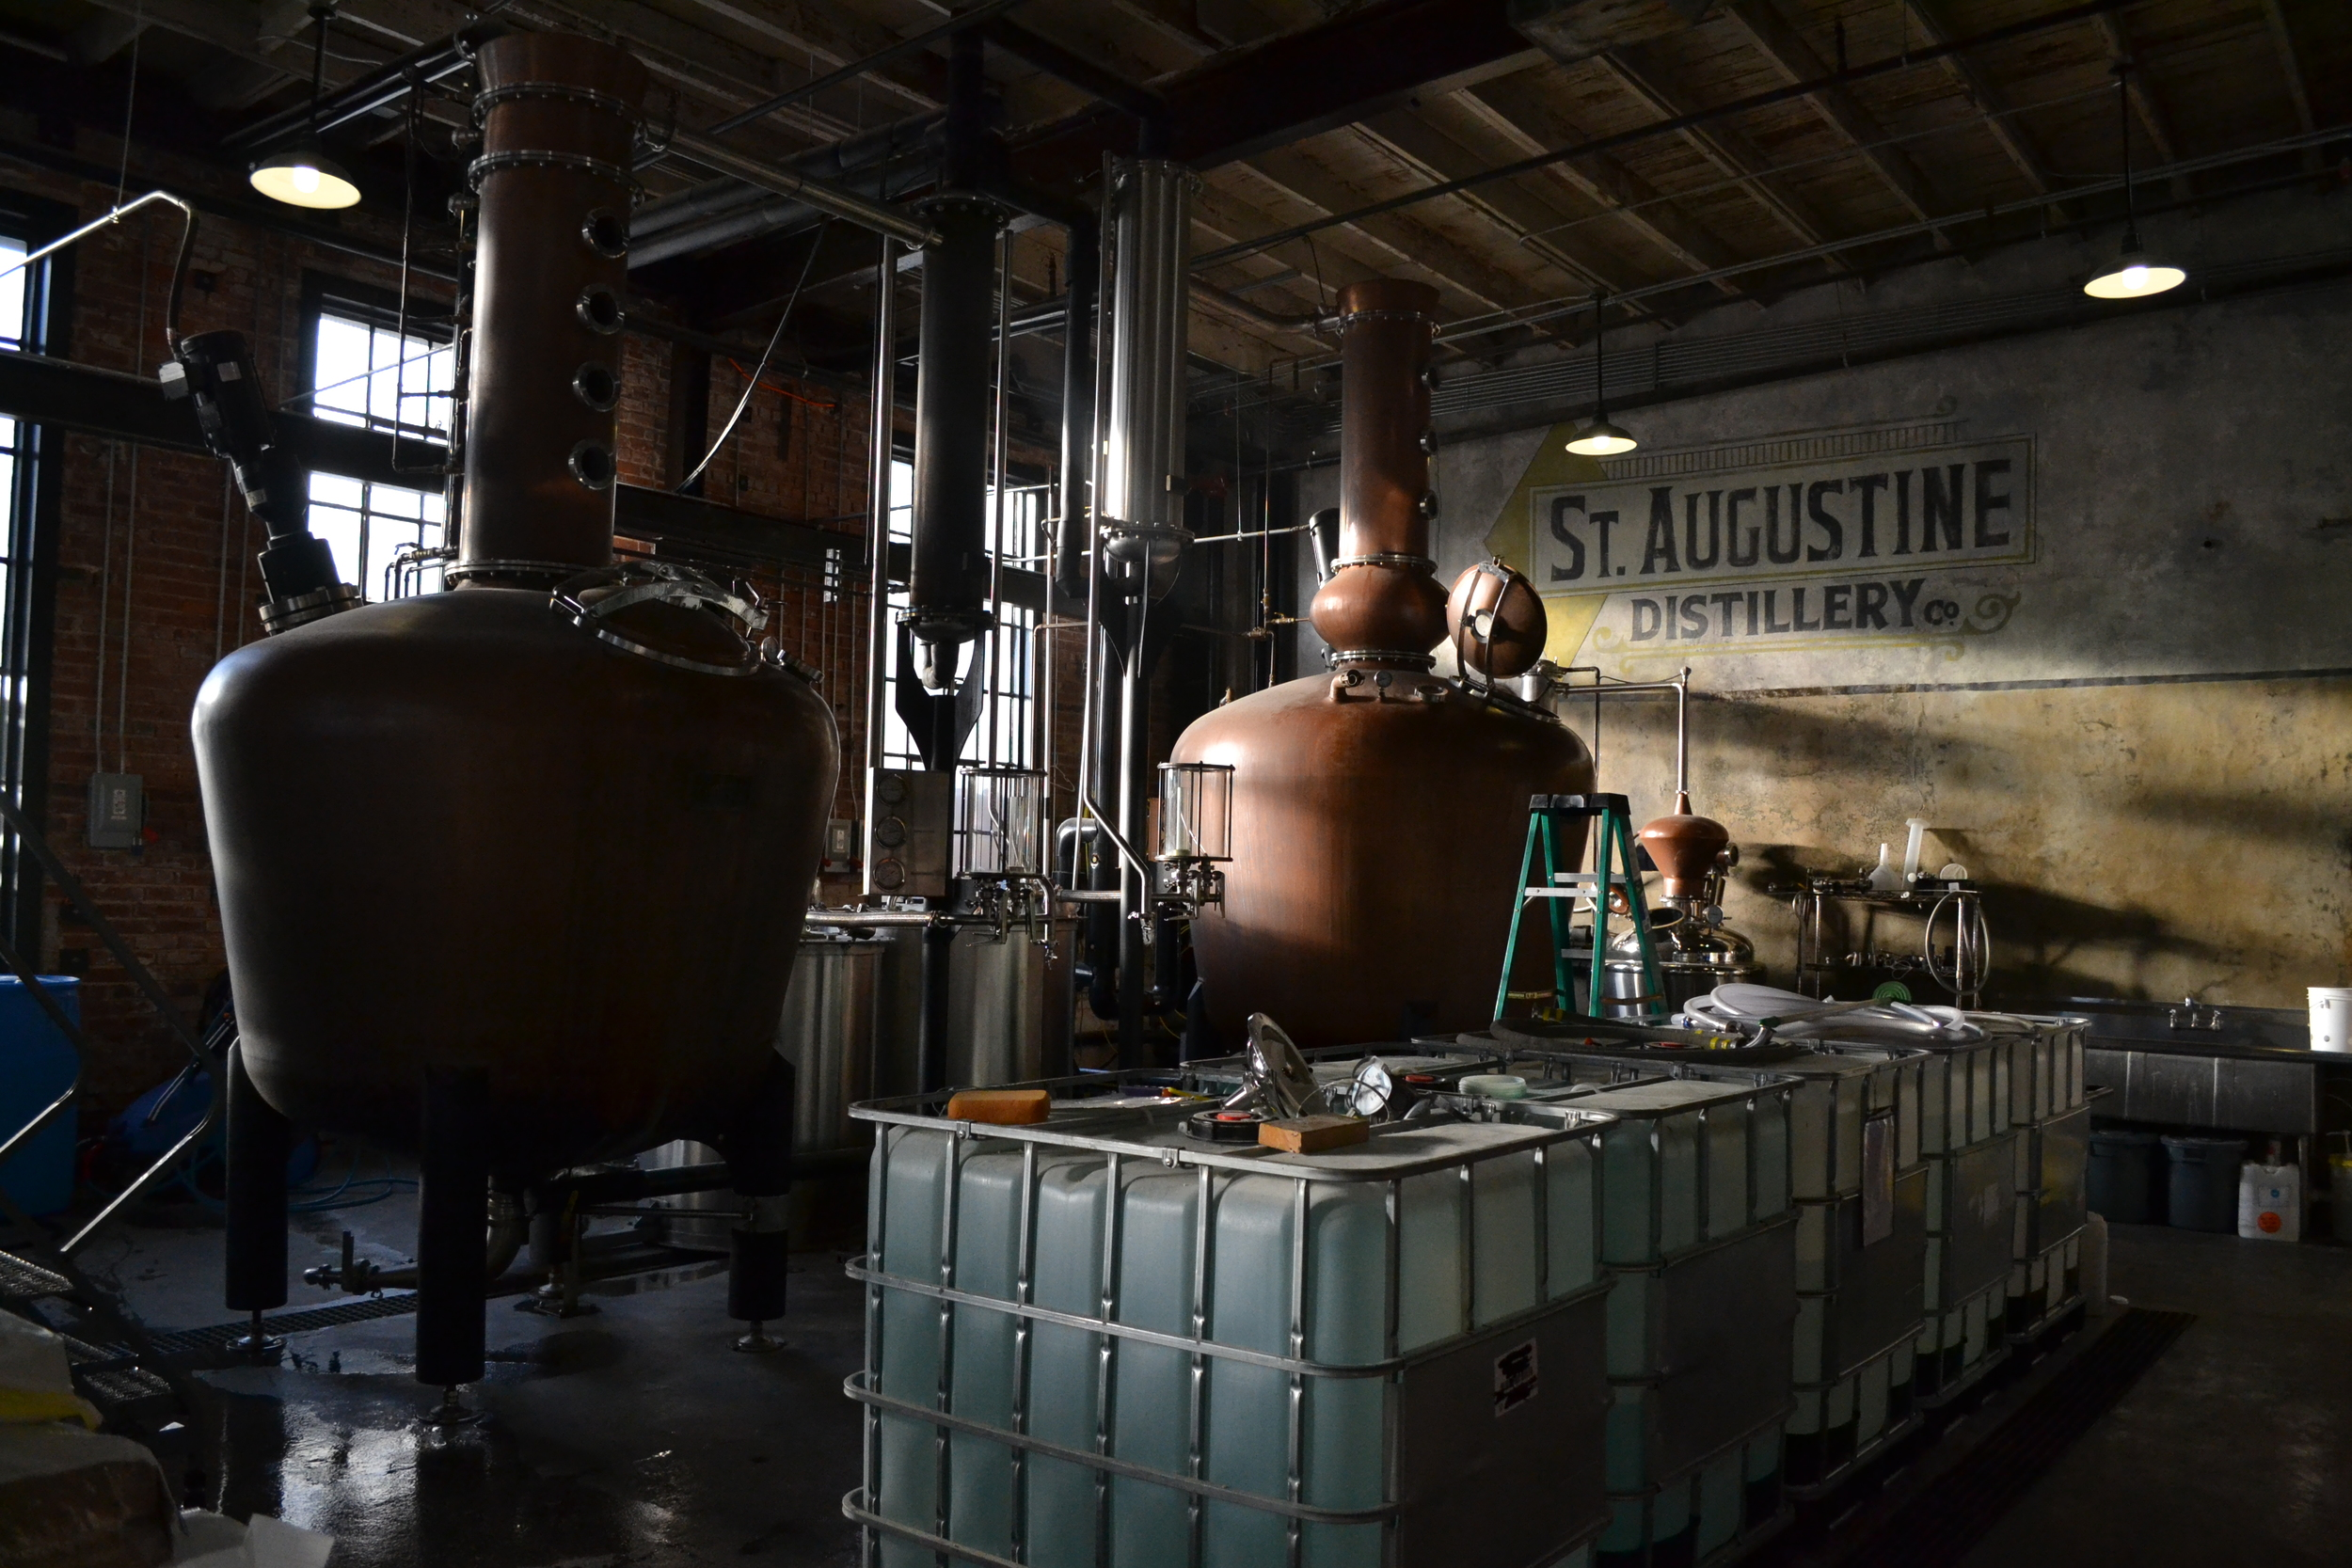 The St. Augustine Distillery is a must-see in Florida.